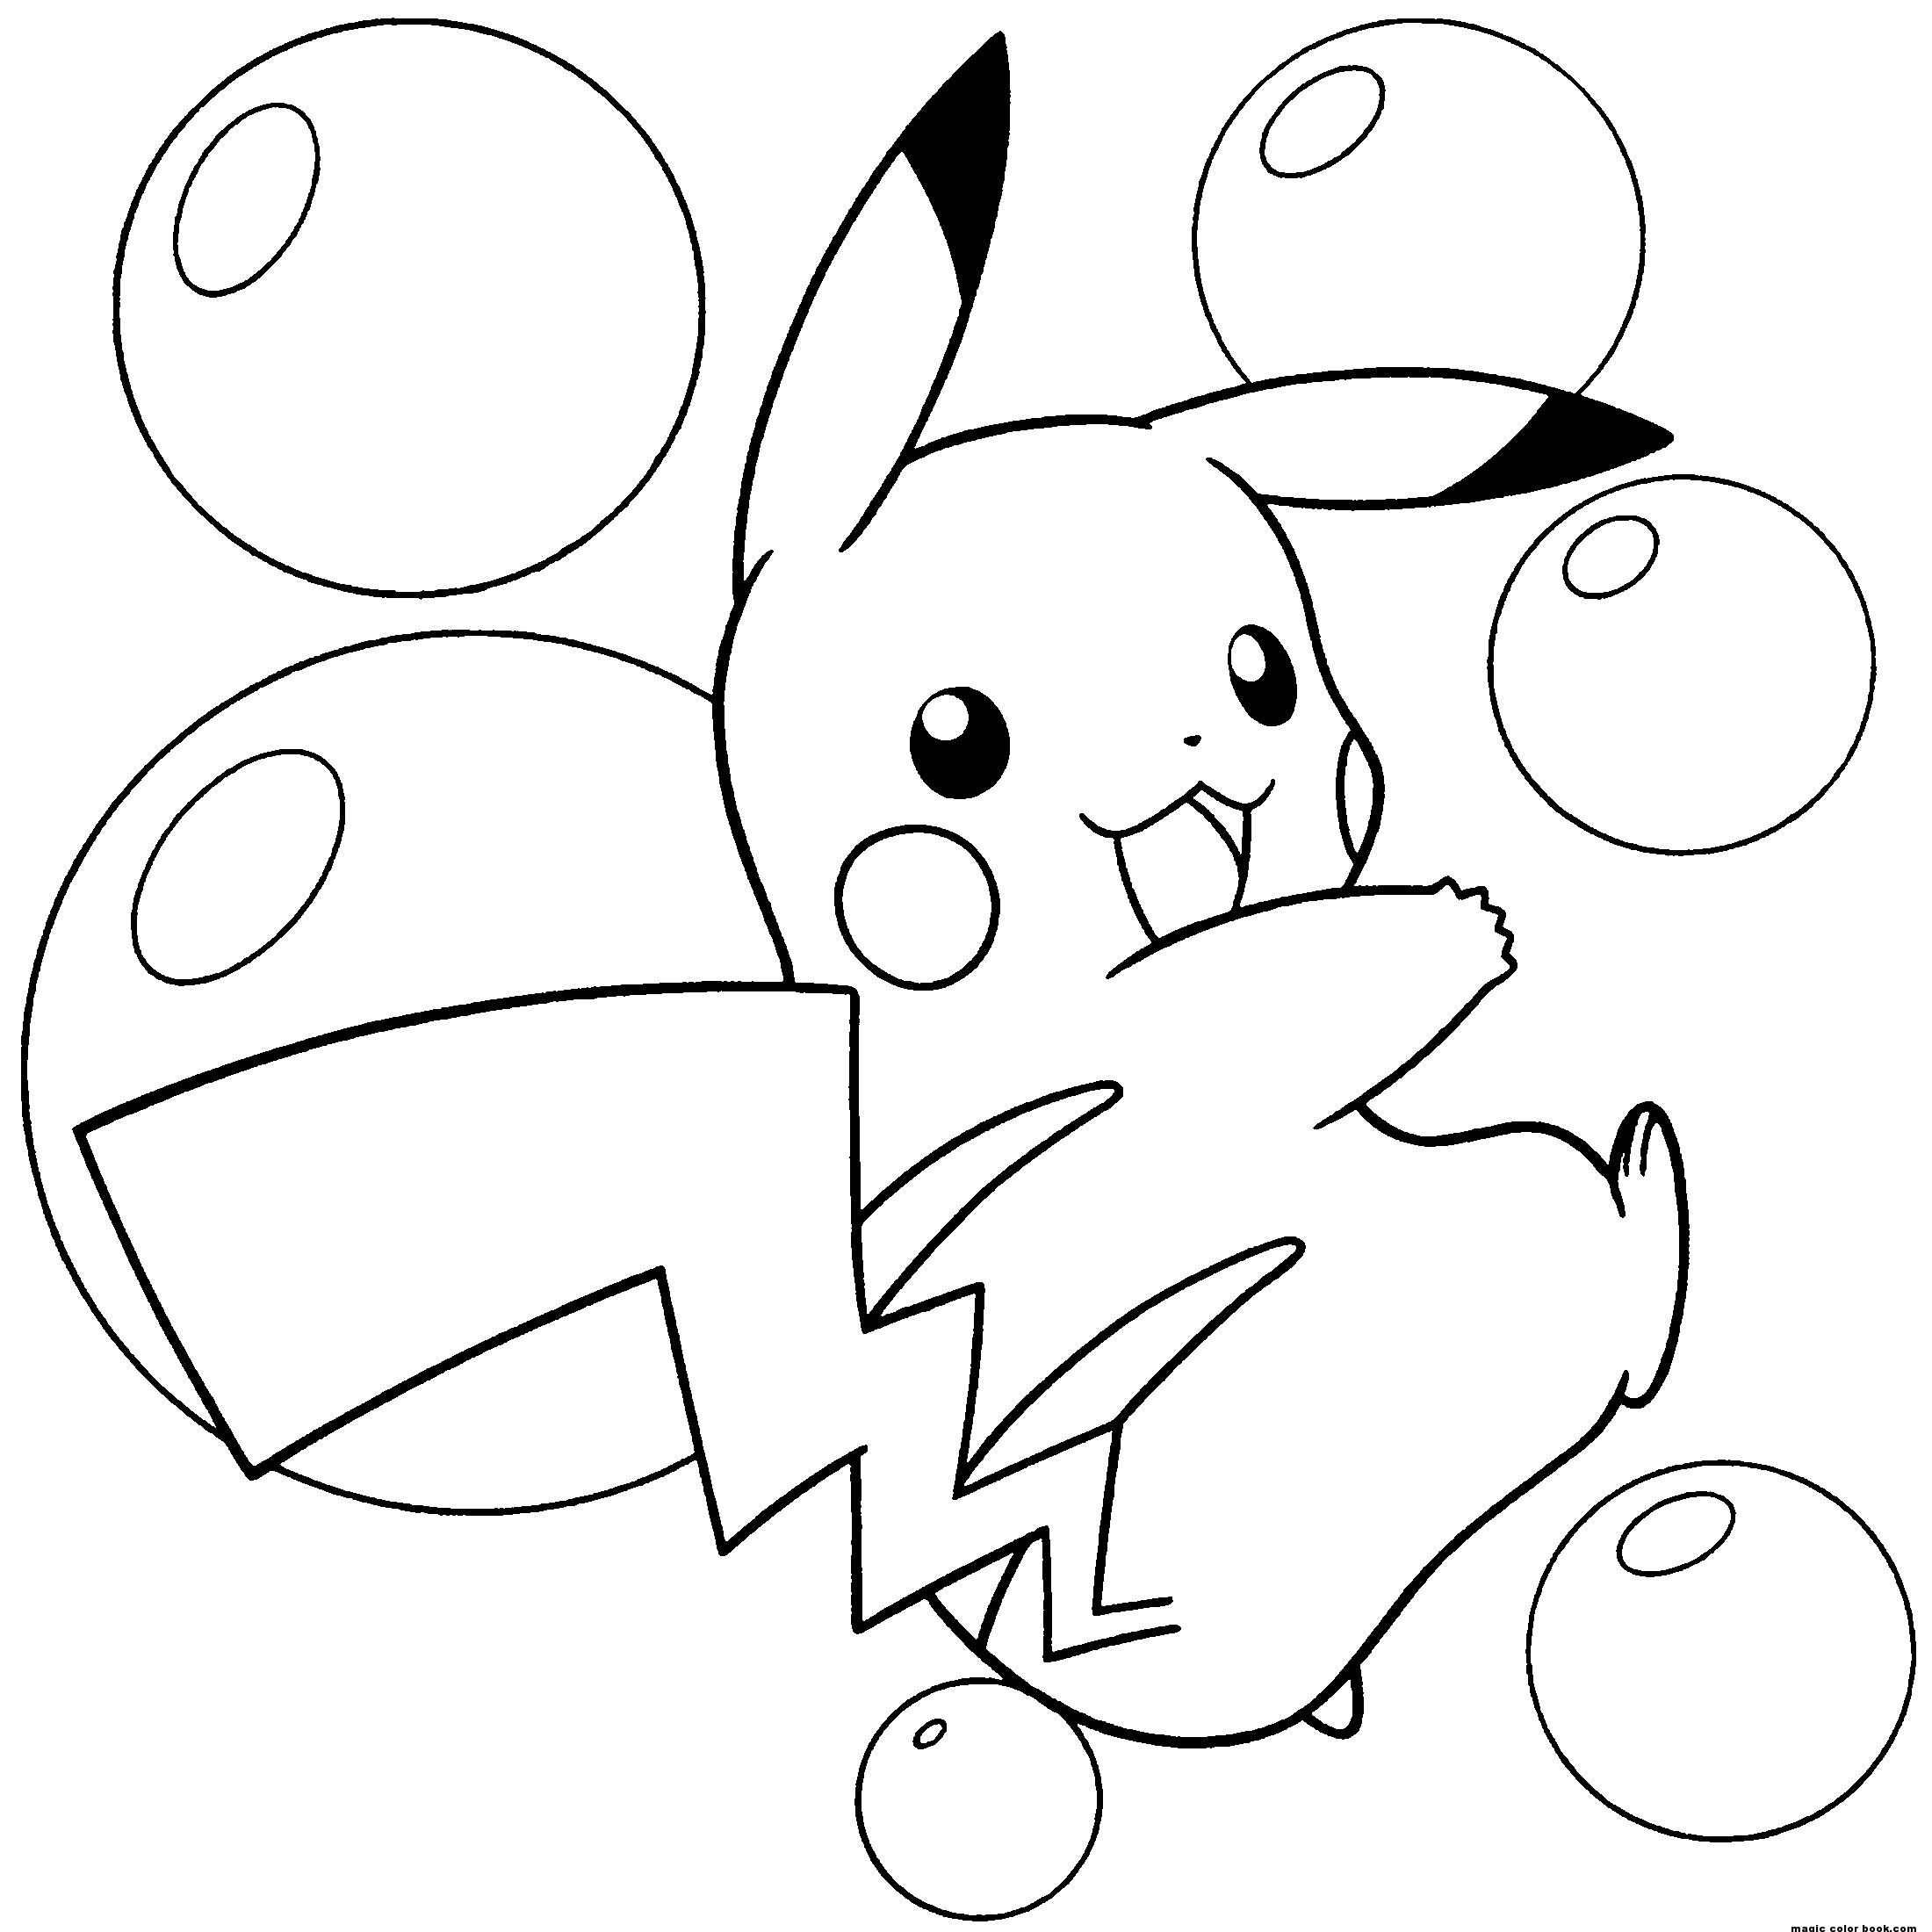 Pokemon Coloring Pages | Coloriage Pikachu, Coloriage avec Coloriage De Pokémon Gratuit